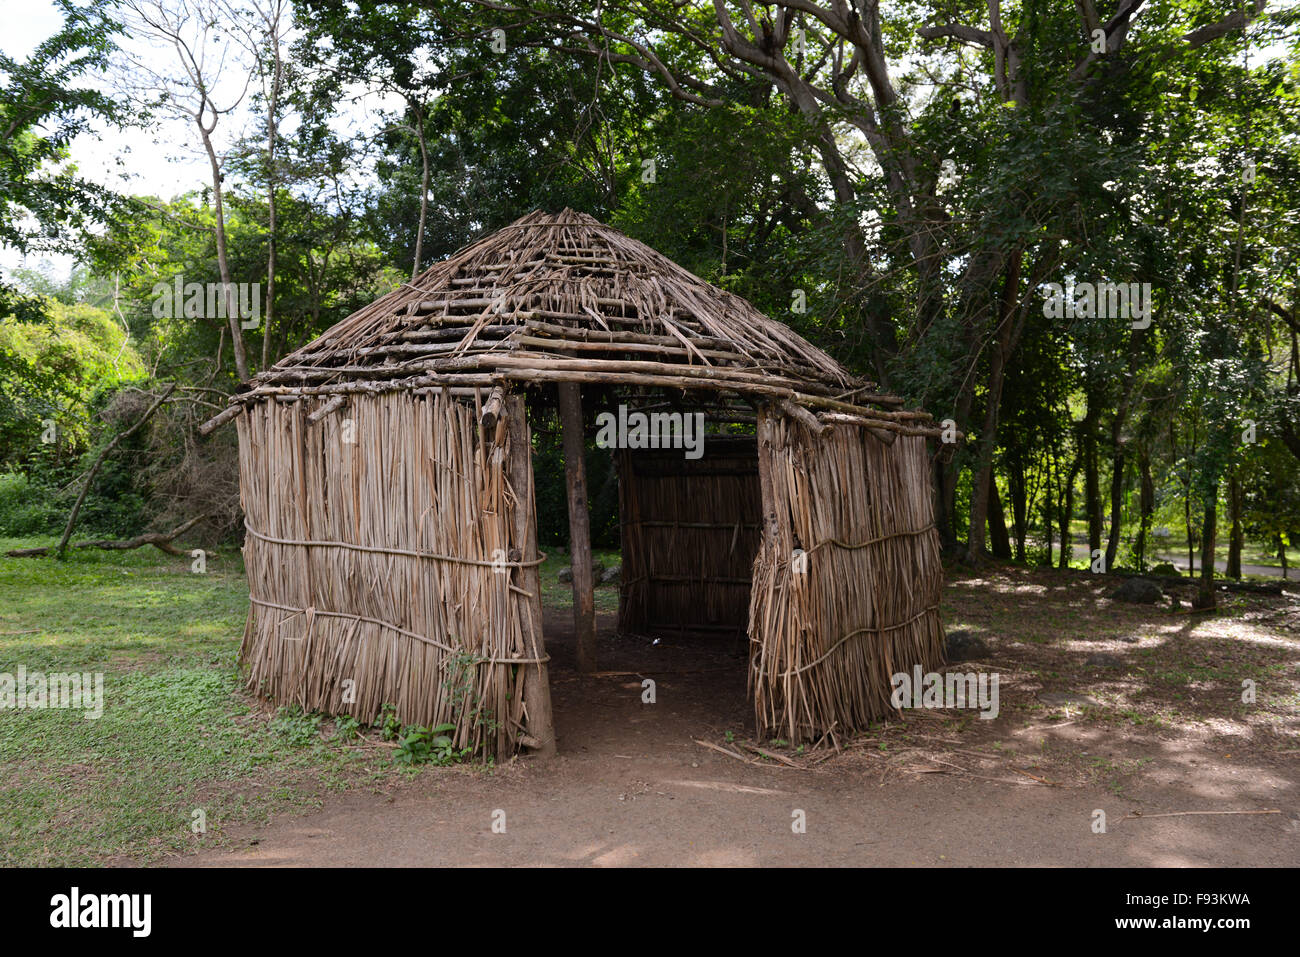 Replica of a Indigenous hut at the Tibes Indigenous Ceremonial Stock Photo, Royalty Free Image ...